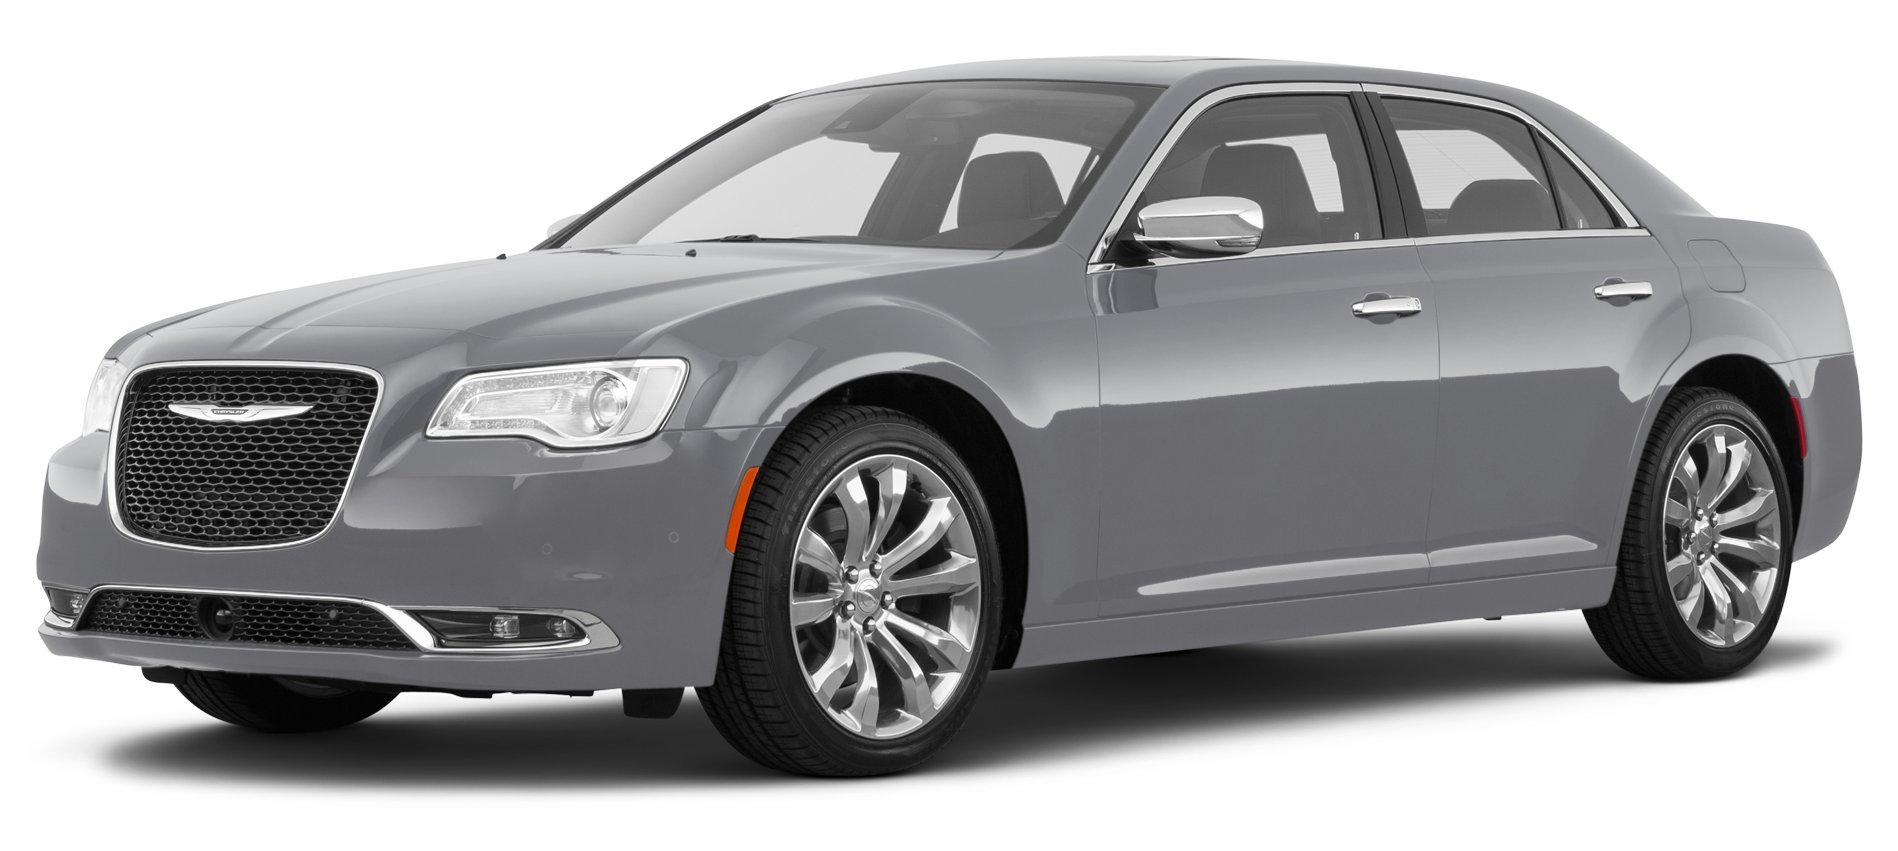 2017 chrysler 300 reviews images and specs vehicles. Black Bedroom Furniture Sets. Home Design Ideas